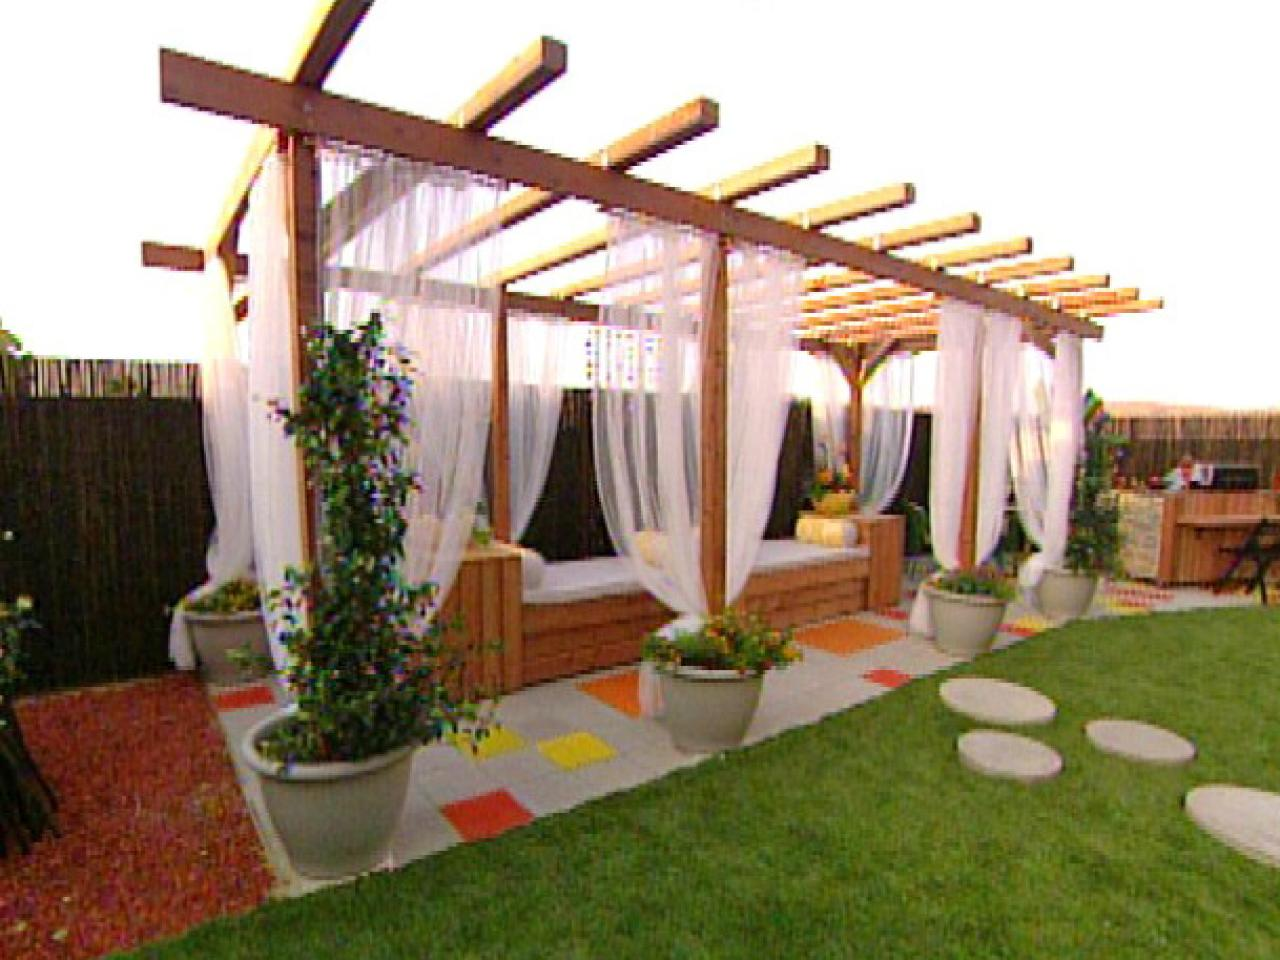 Build a Pergola For a Deck or Patio - Build A Pergola For A Deck Or Patio HGTV